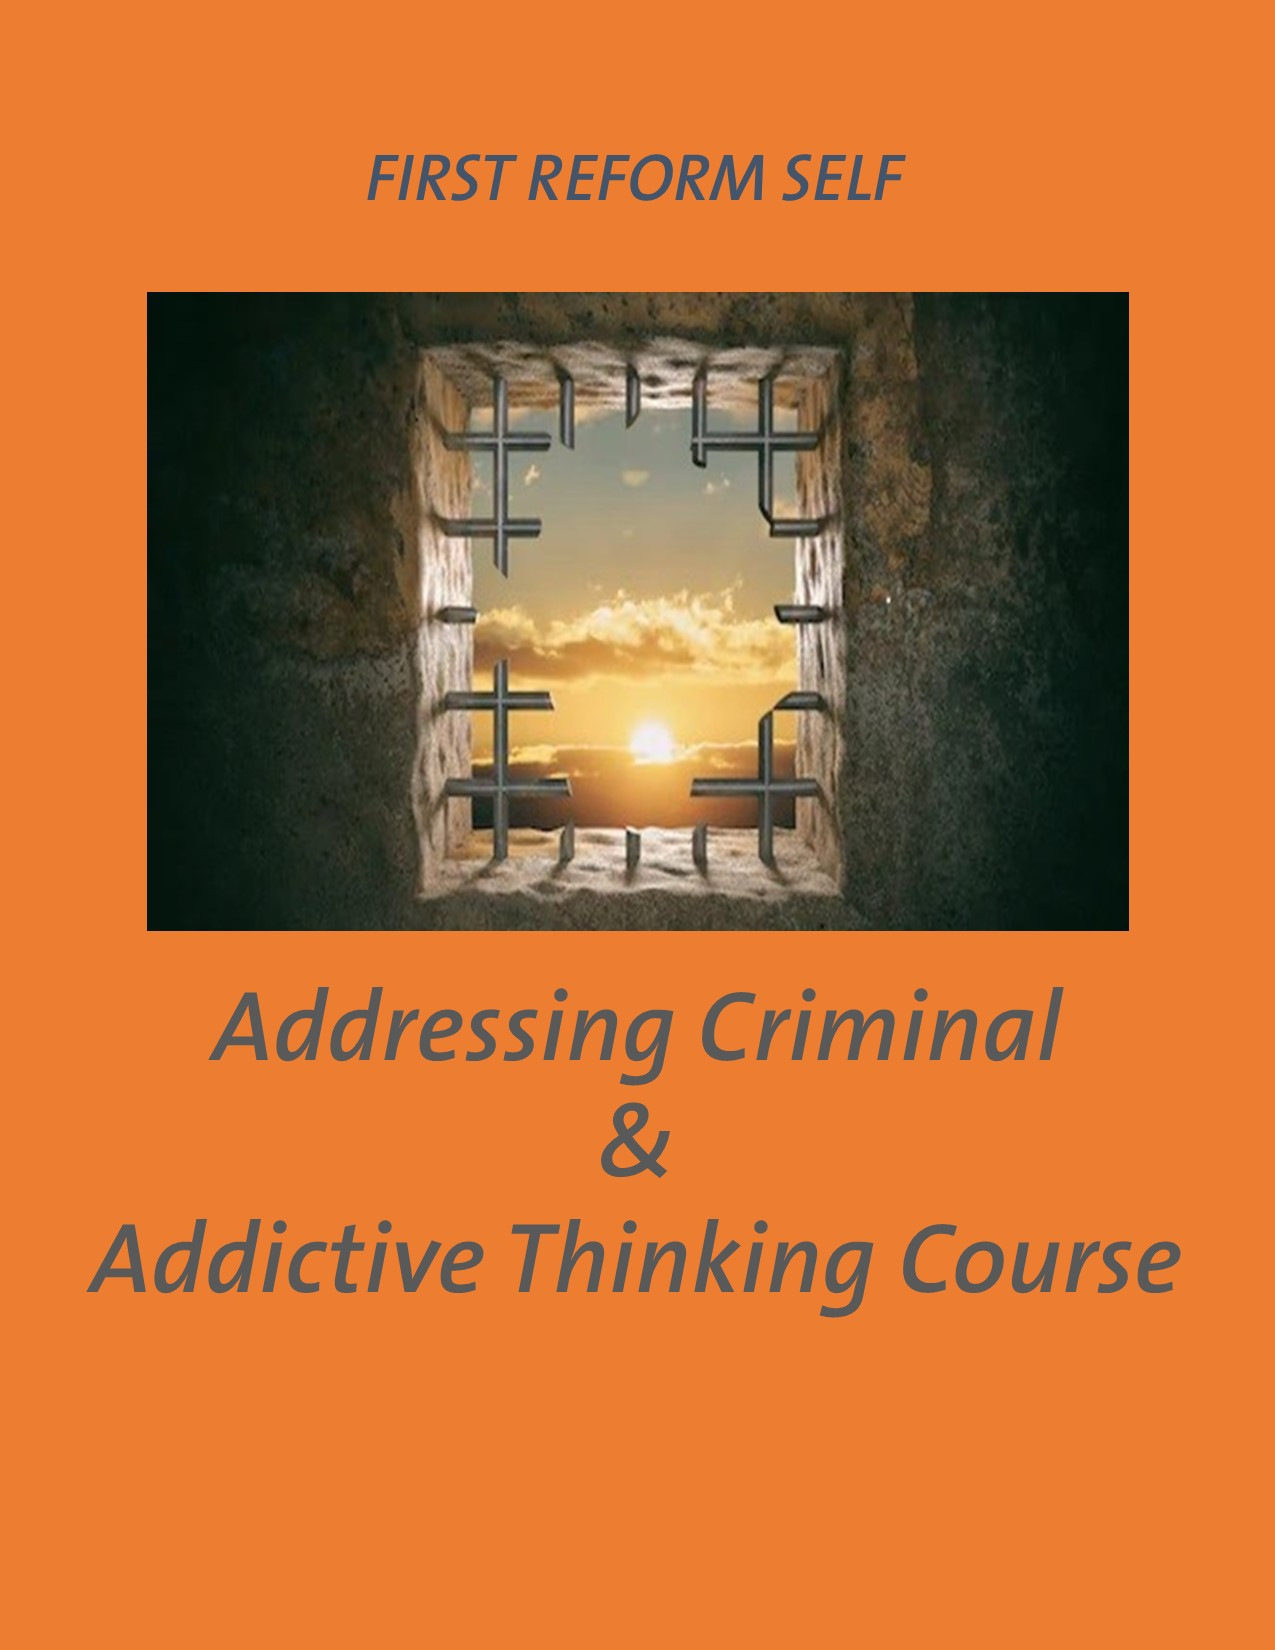 Addressing Criminal Amp Addictive Thinking Course First